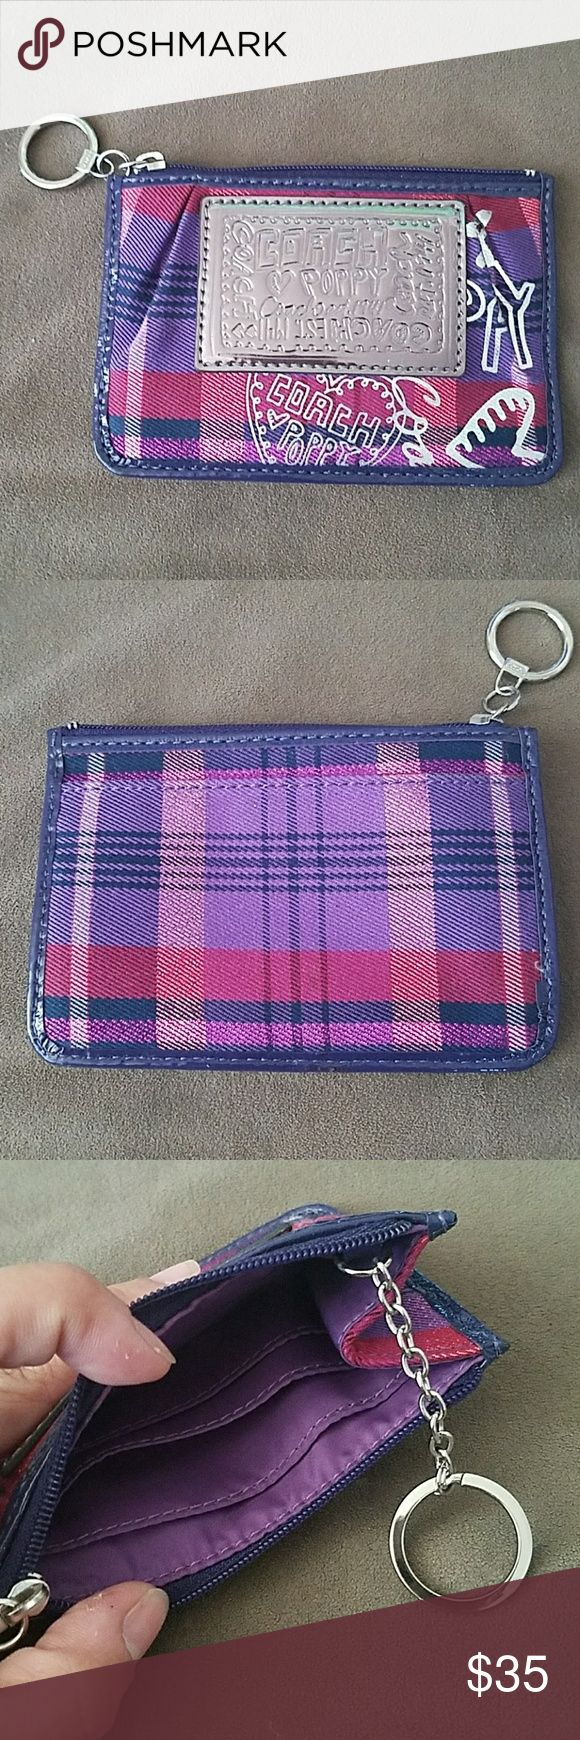 Authentic Coach Poppy keychain/card holder NWOT Authentic Coach Poppy keychain/card holder Coach Accessories Key & Card Holders